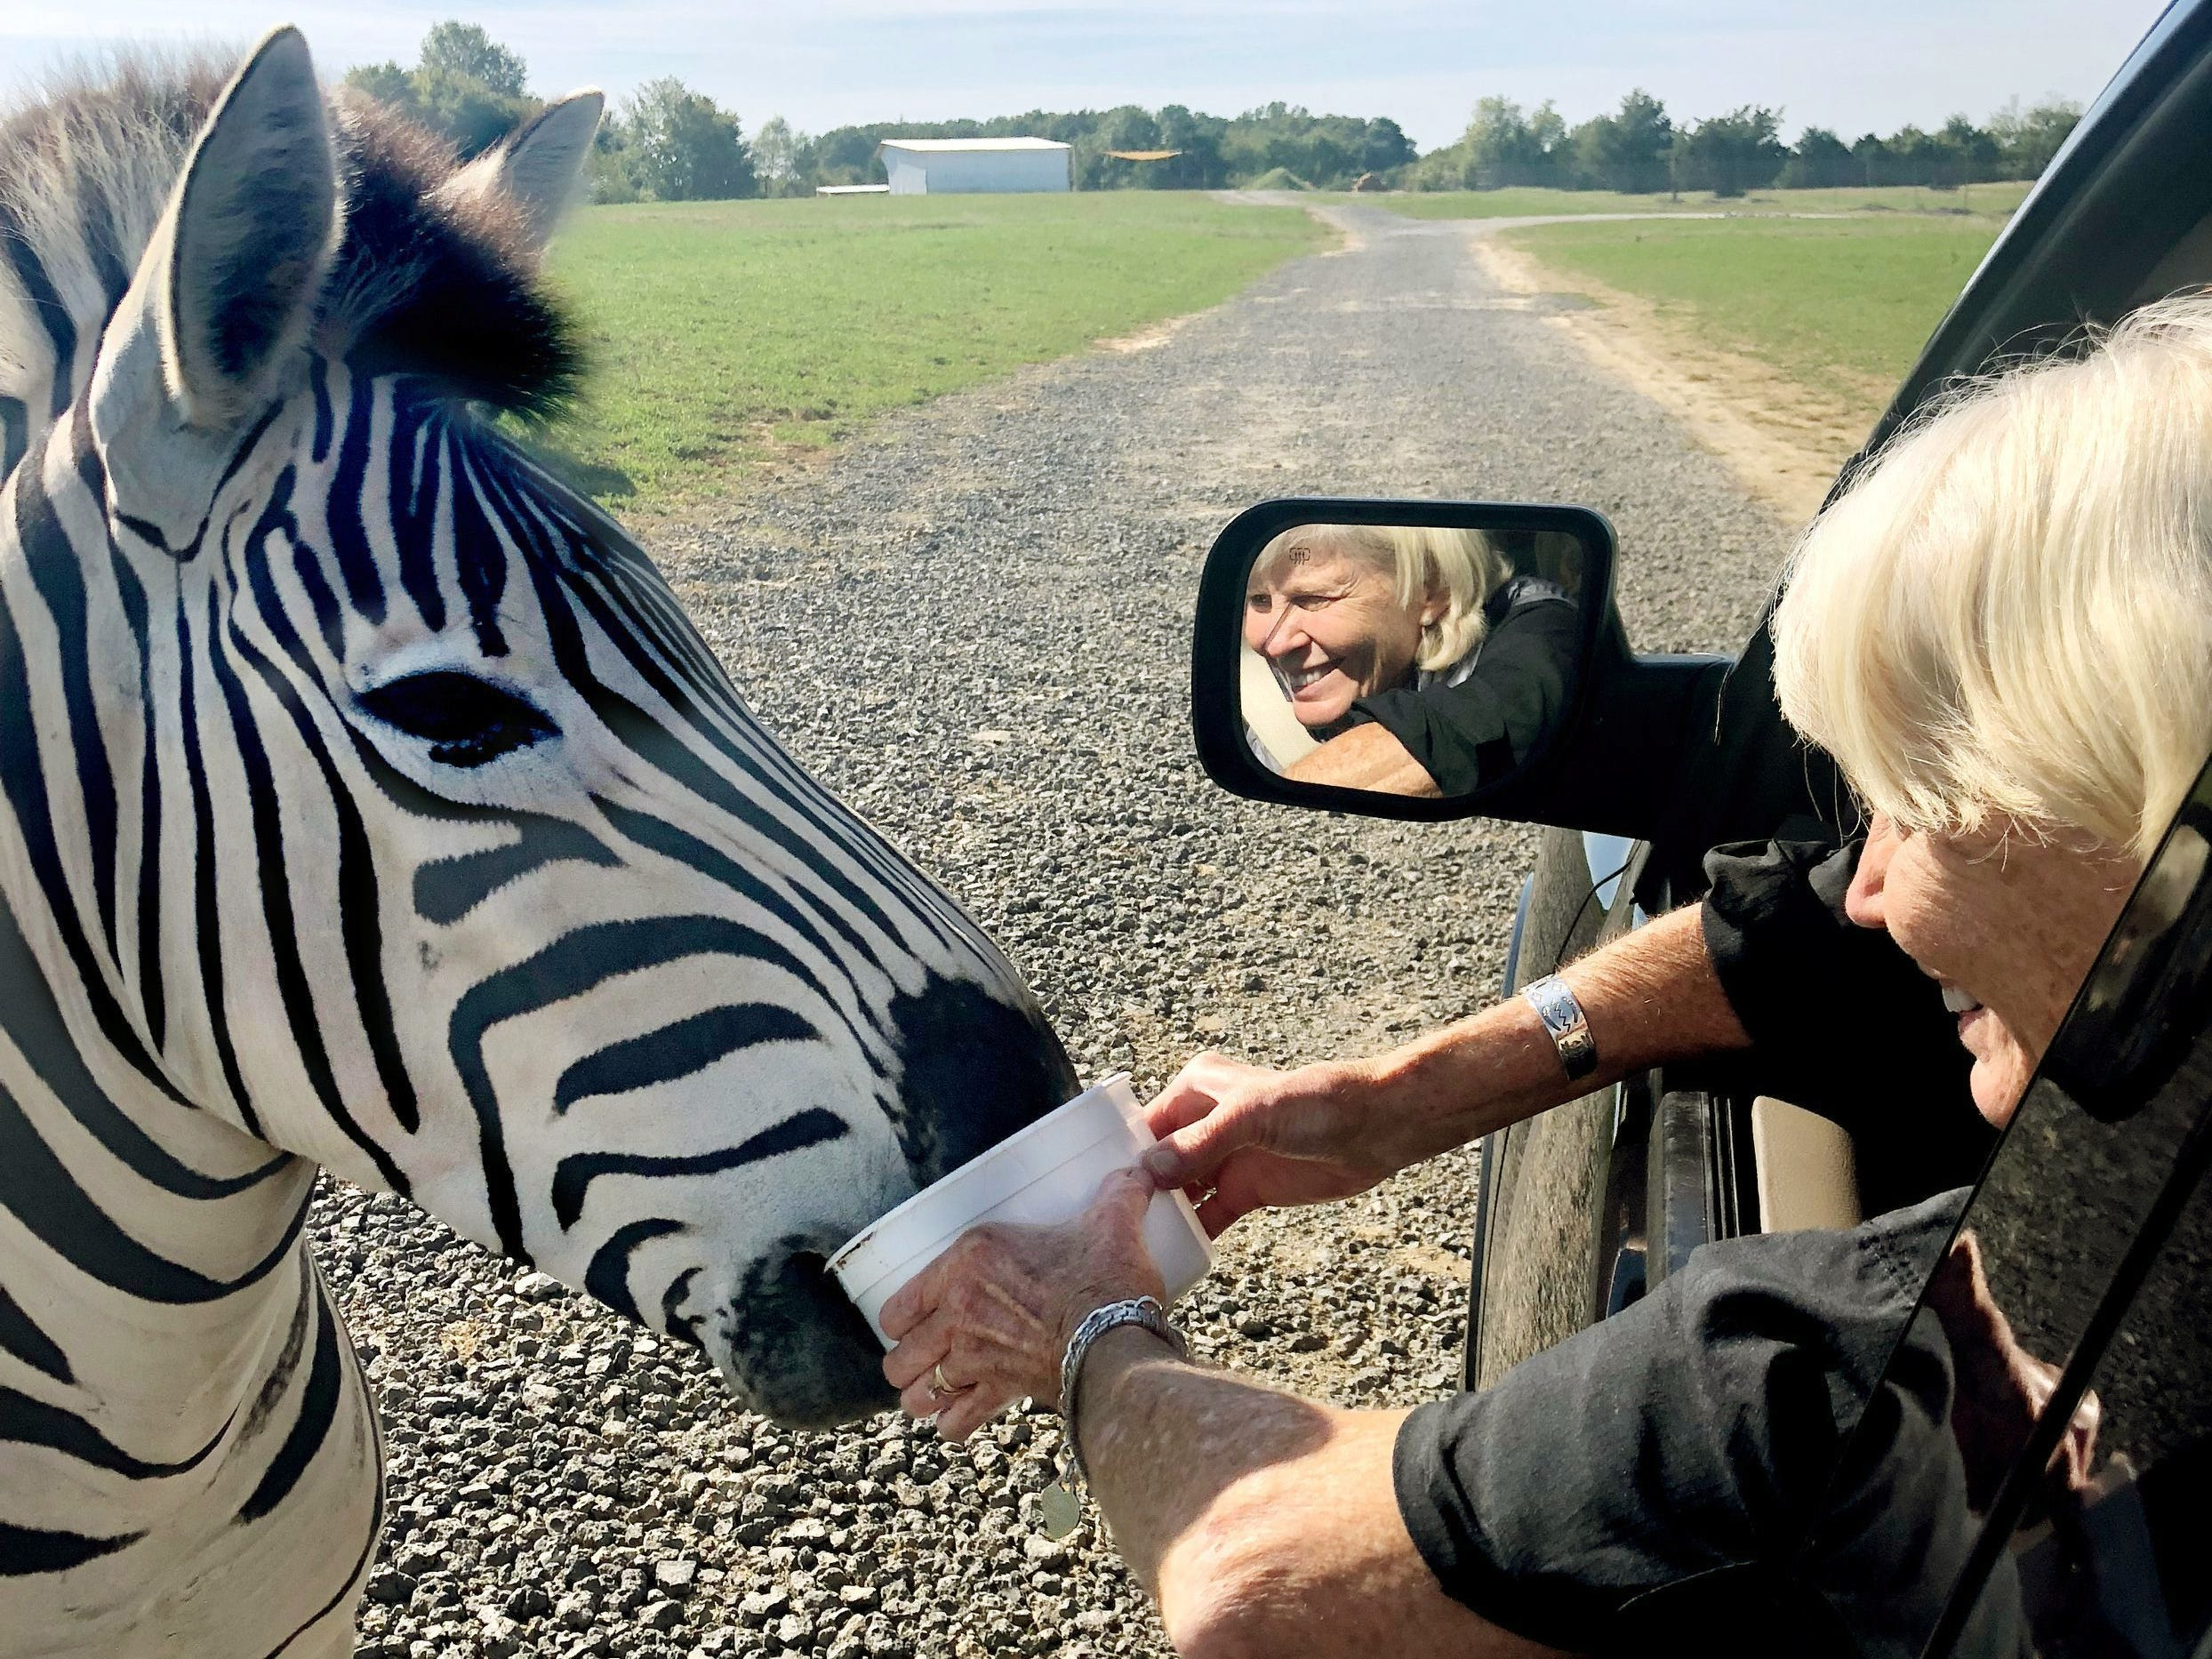 Mary Hance, aka Ms. Cheap, feeds a zebra some exotic pet food at the Tennessee Safari Park on Nov. 25, 2018.